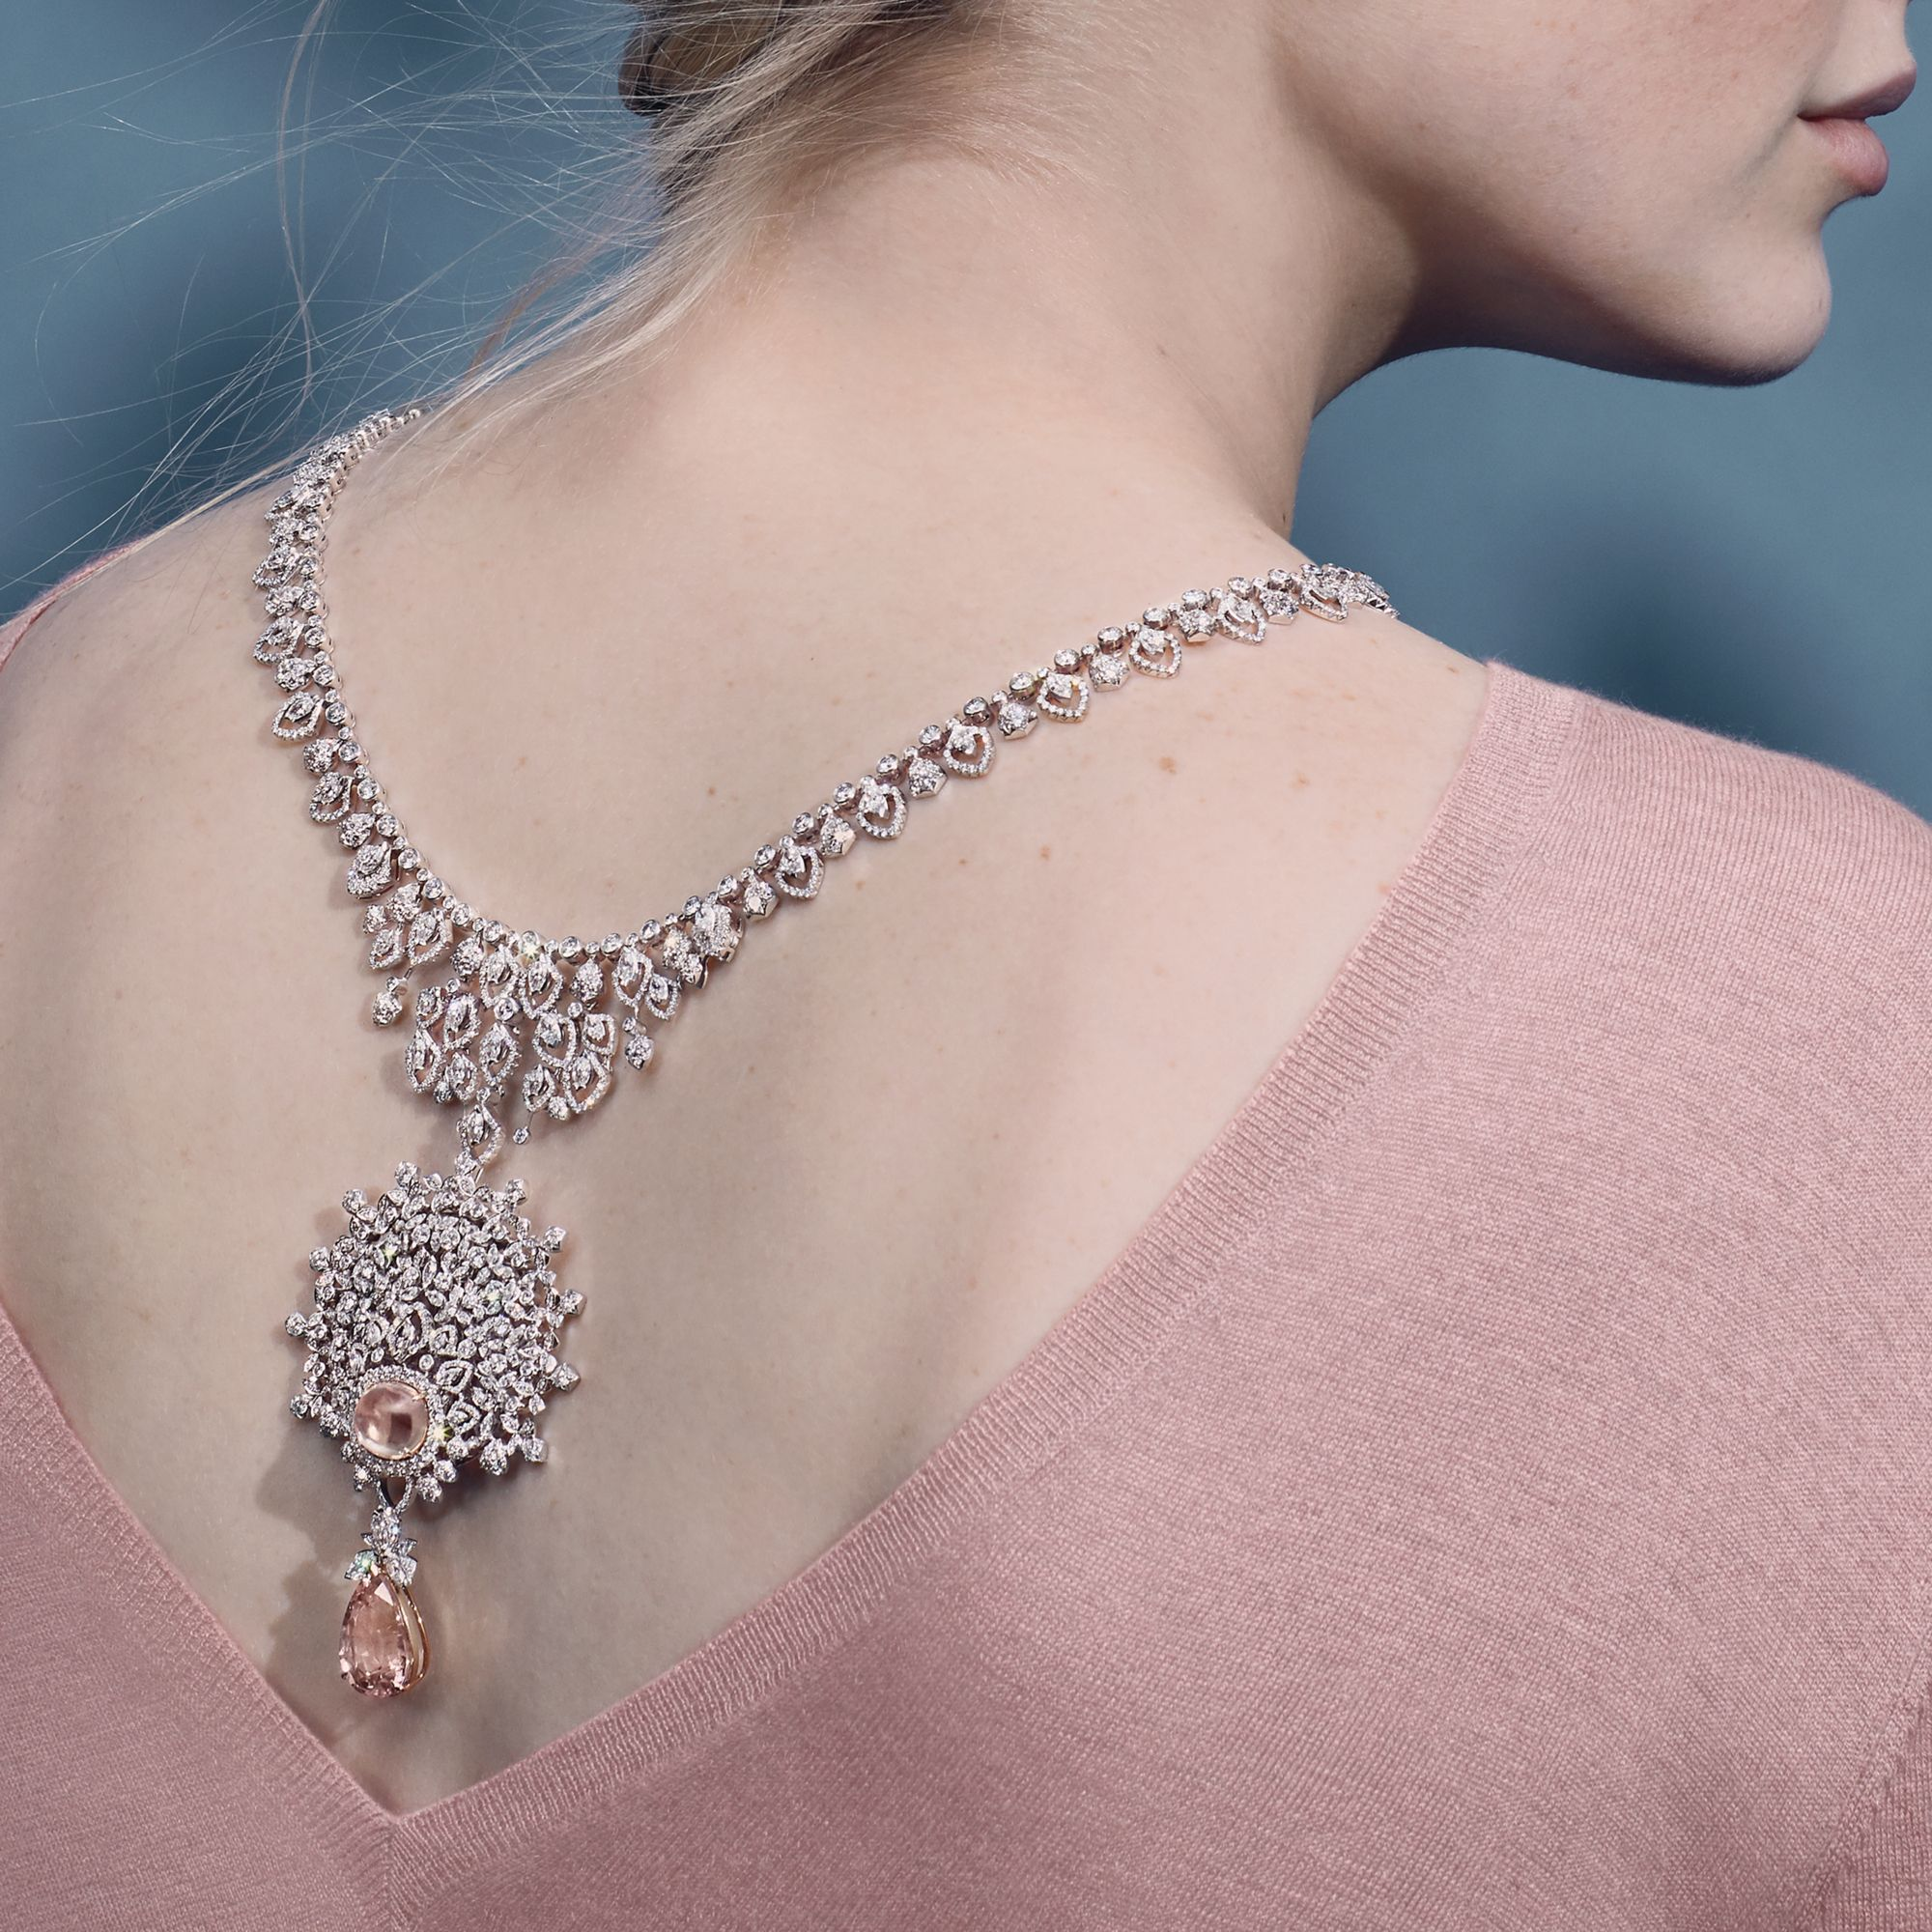 Promenades Impériales necklace in white and pink gold set with Padparadscha sapphires and diamonds by Chaumet